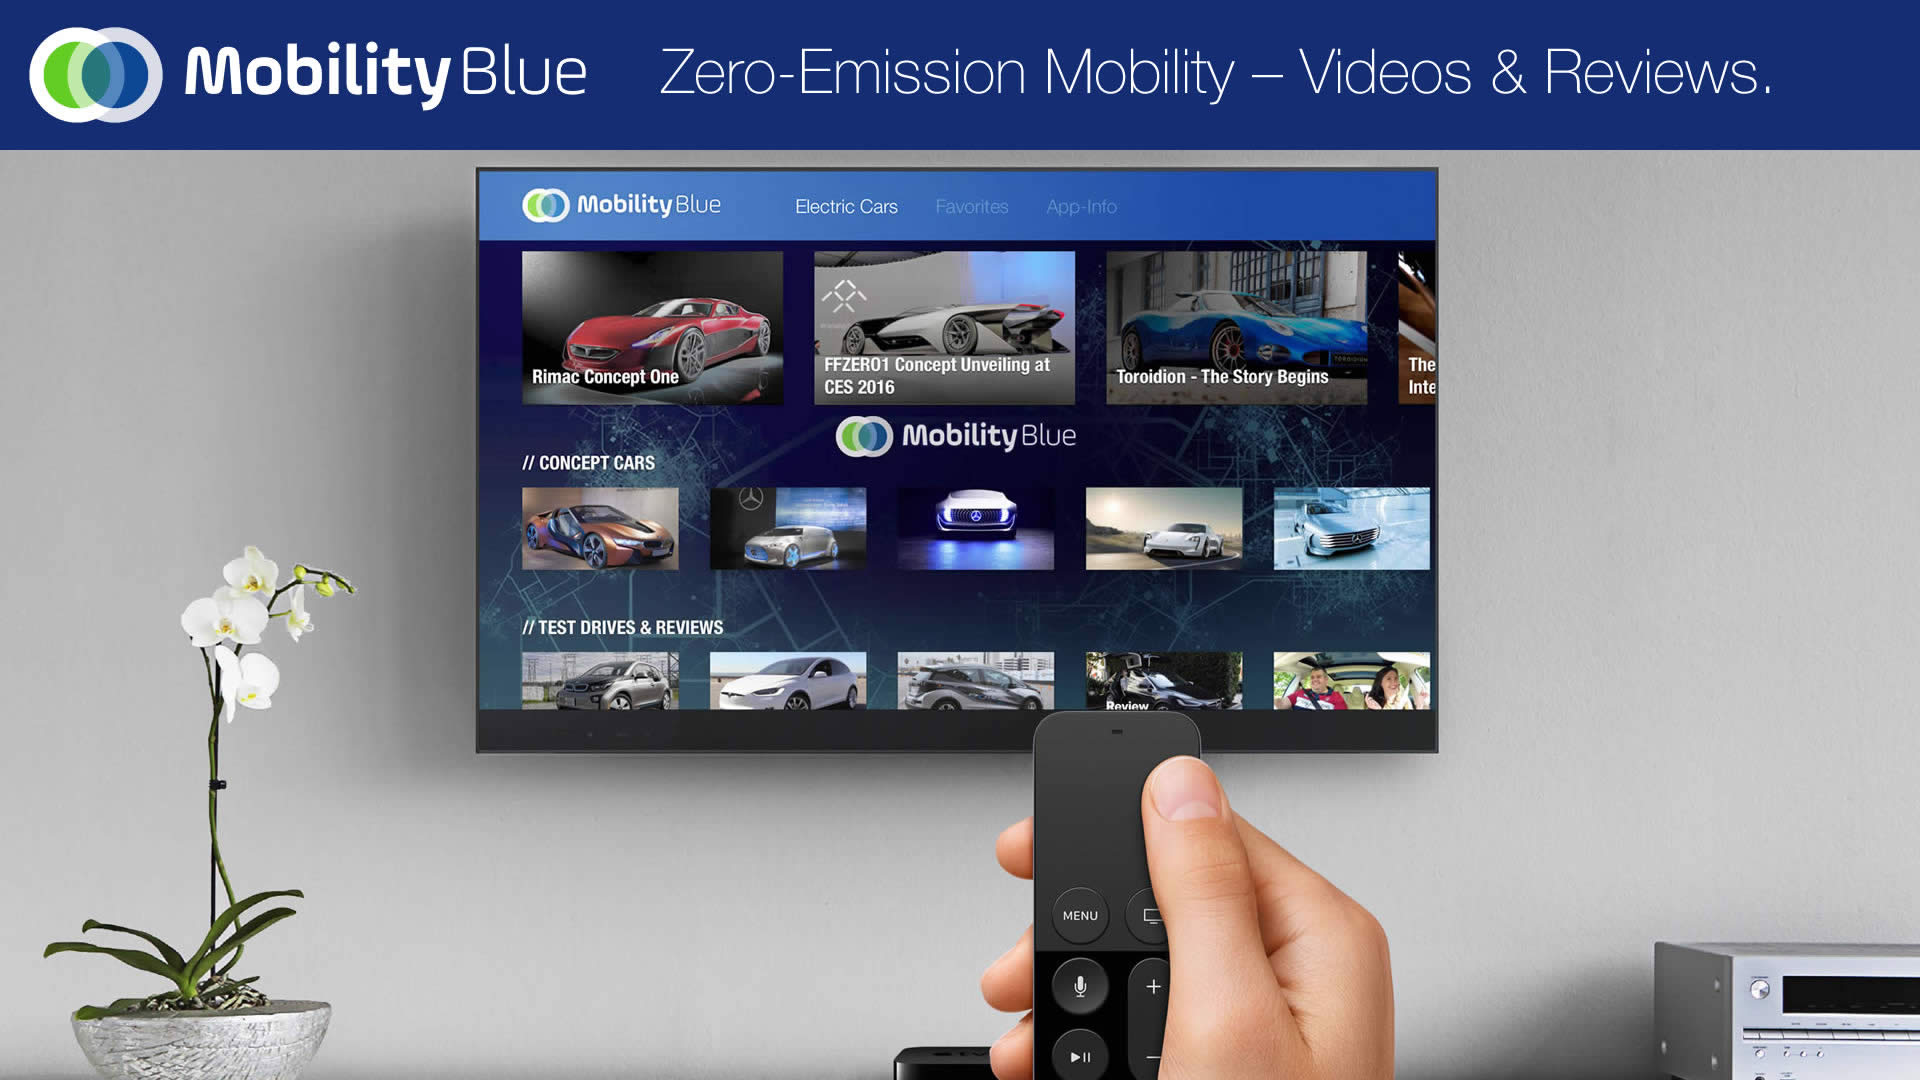 MobilityBlue Apple TV eMobility App